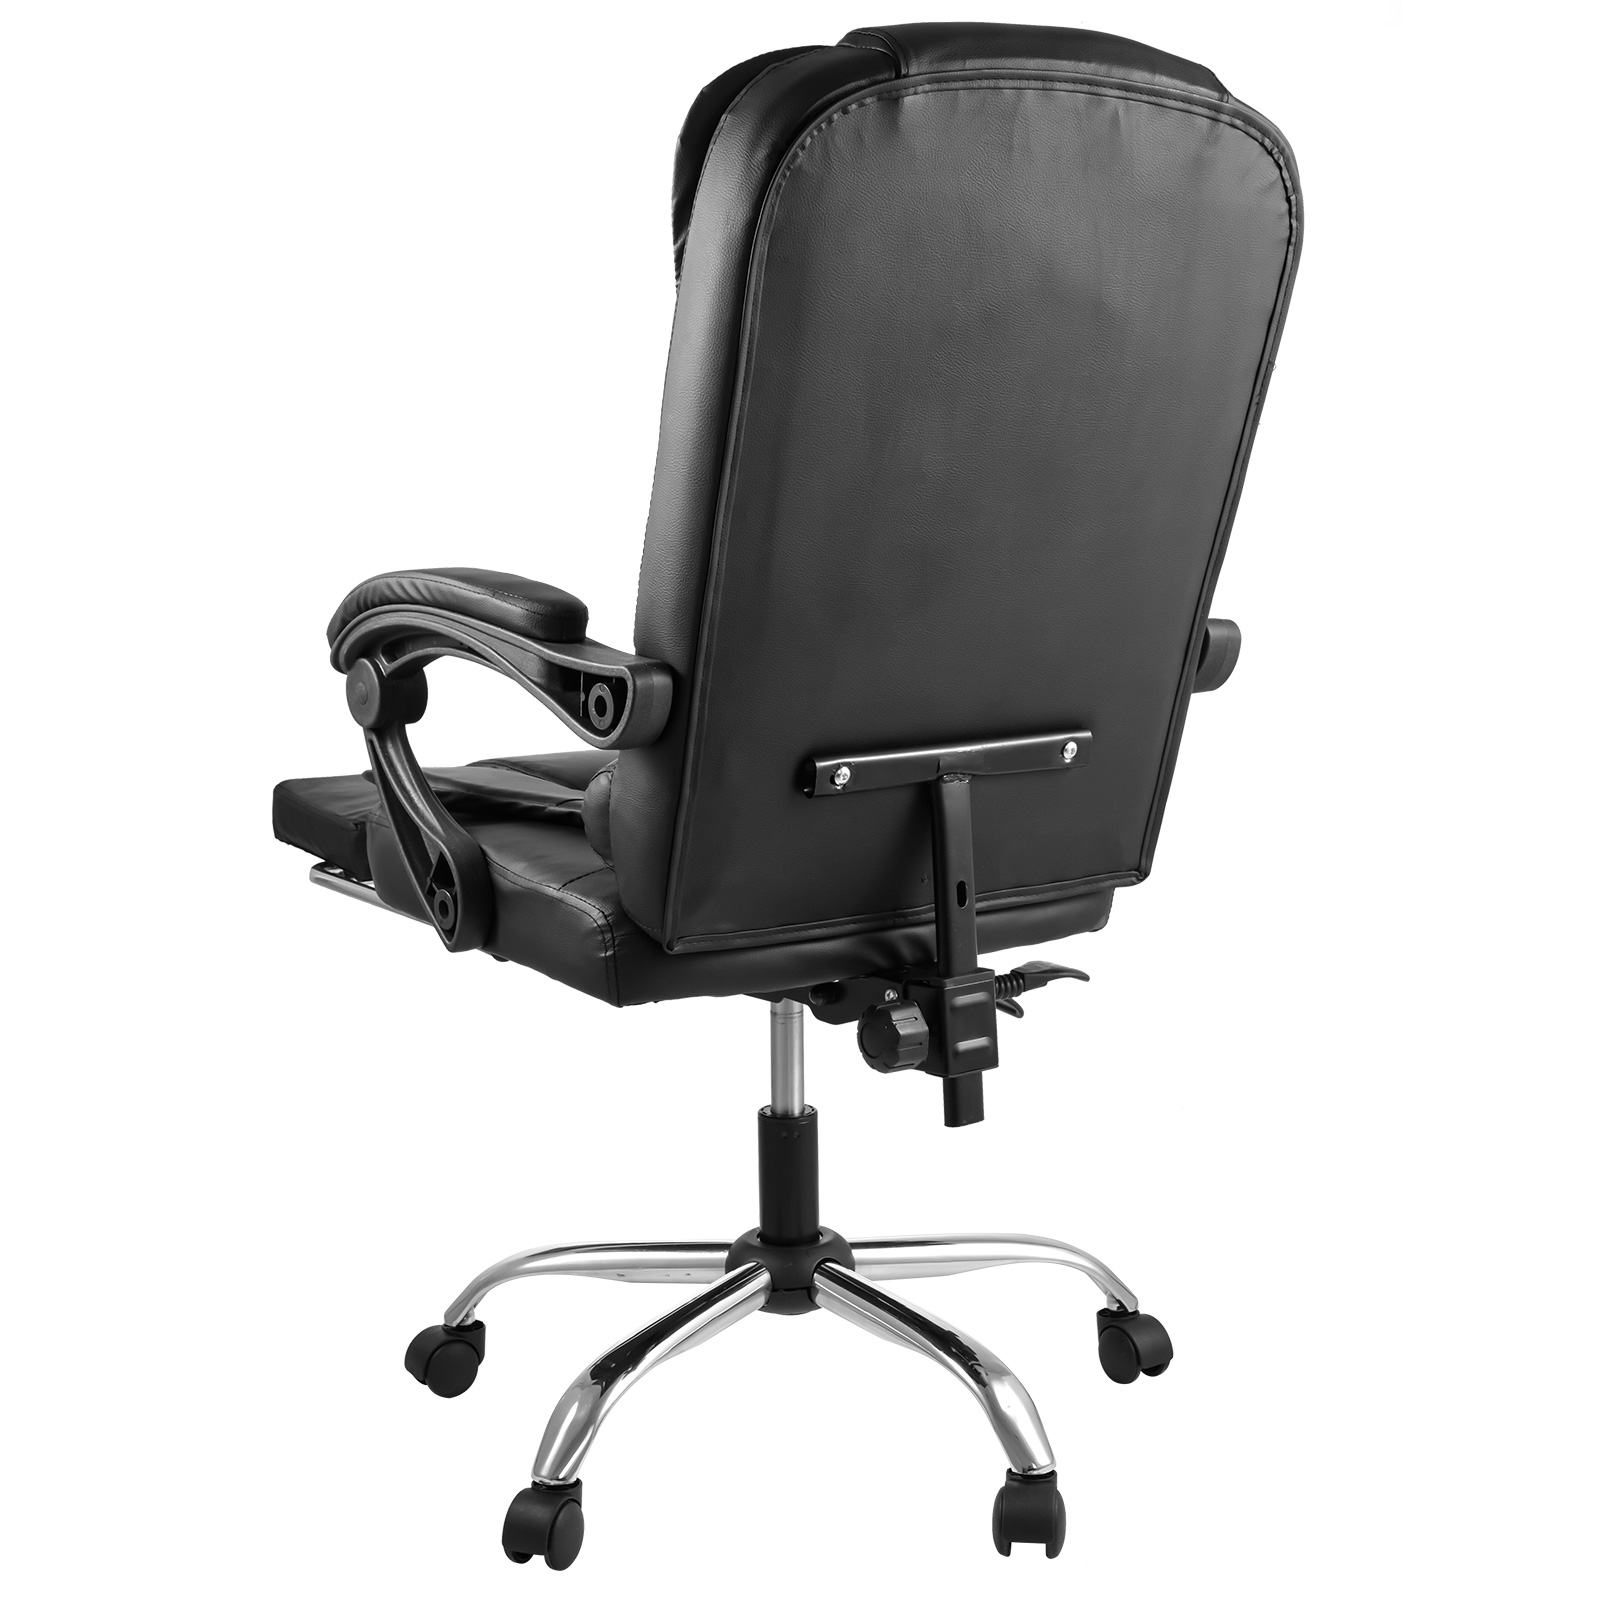 executive reclining office chair ergonomic high back leather footrest armchair ebay. Black Bedroom Furniture Sets. Home Design Ideas